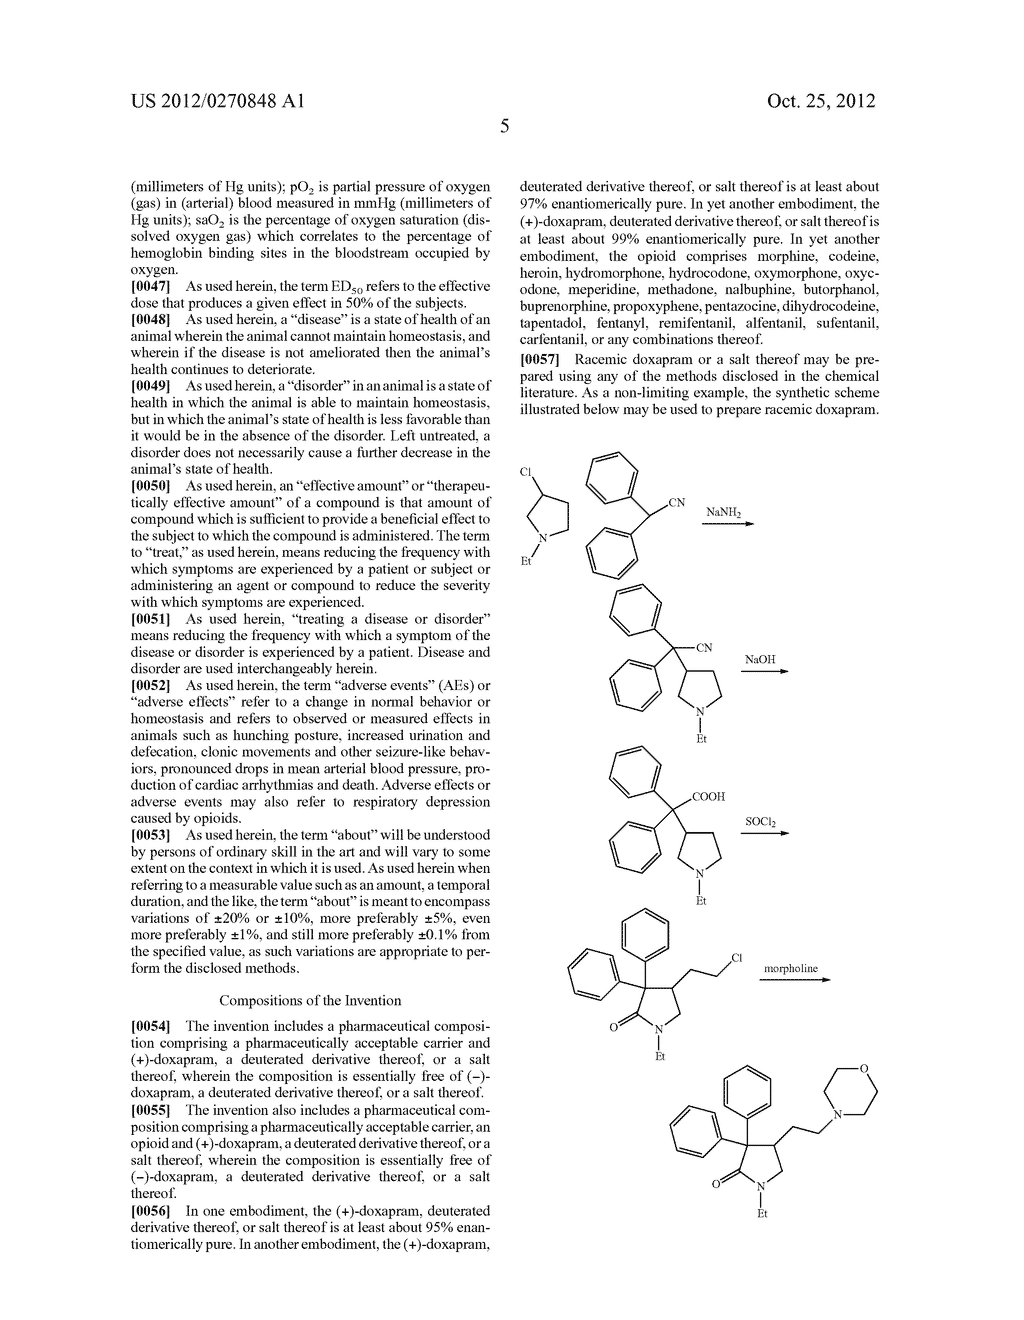 Novel Compositions and Therapeutic Methods Using Same - diagram, schematic, and image 17